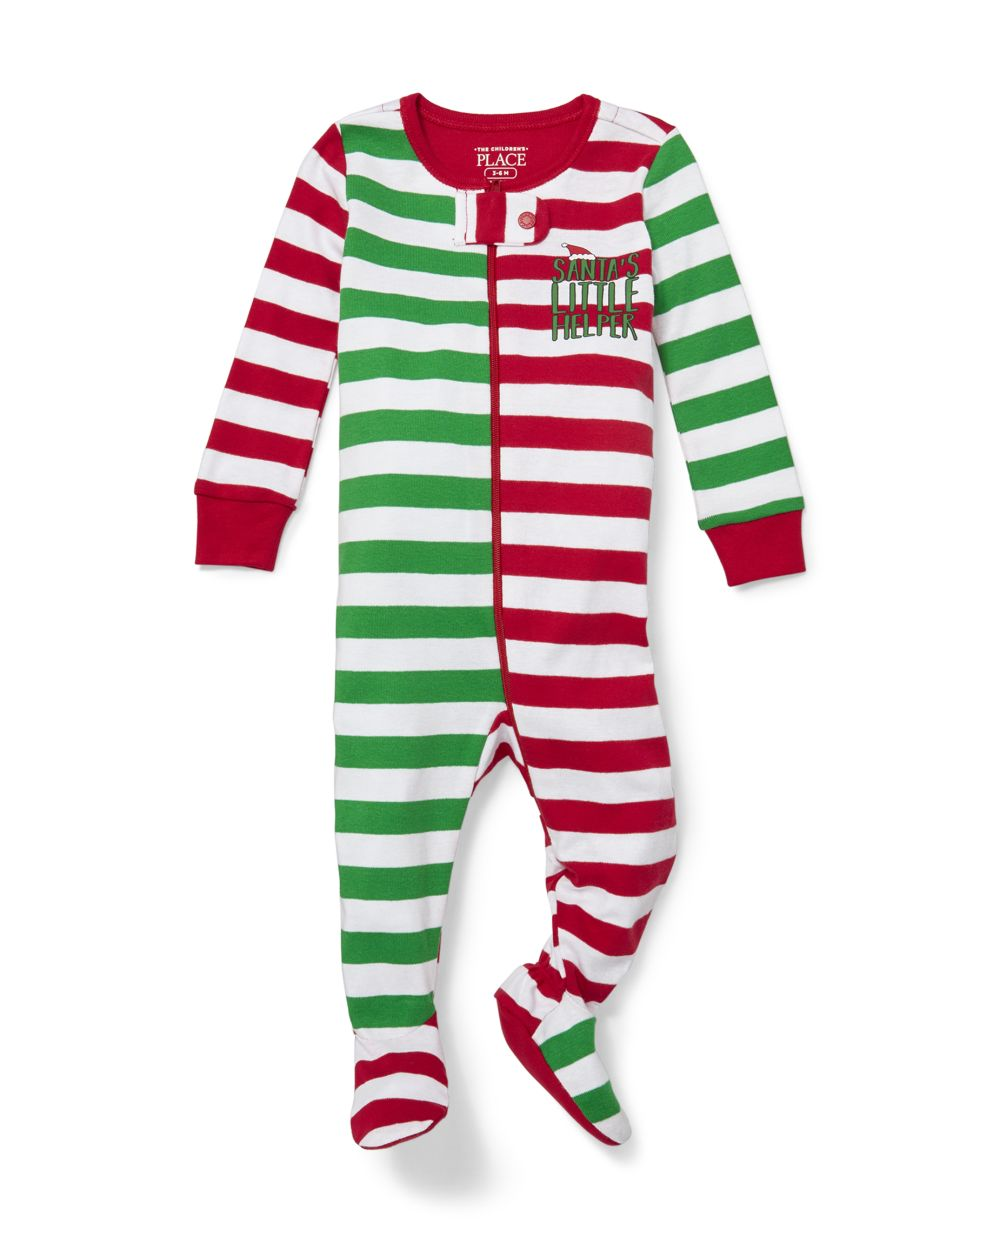 Unisex Baby And Toddler Matching Family Santa Striped Snug Fit Cotton One Piece Pajamas